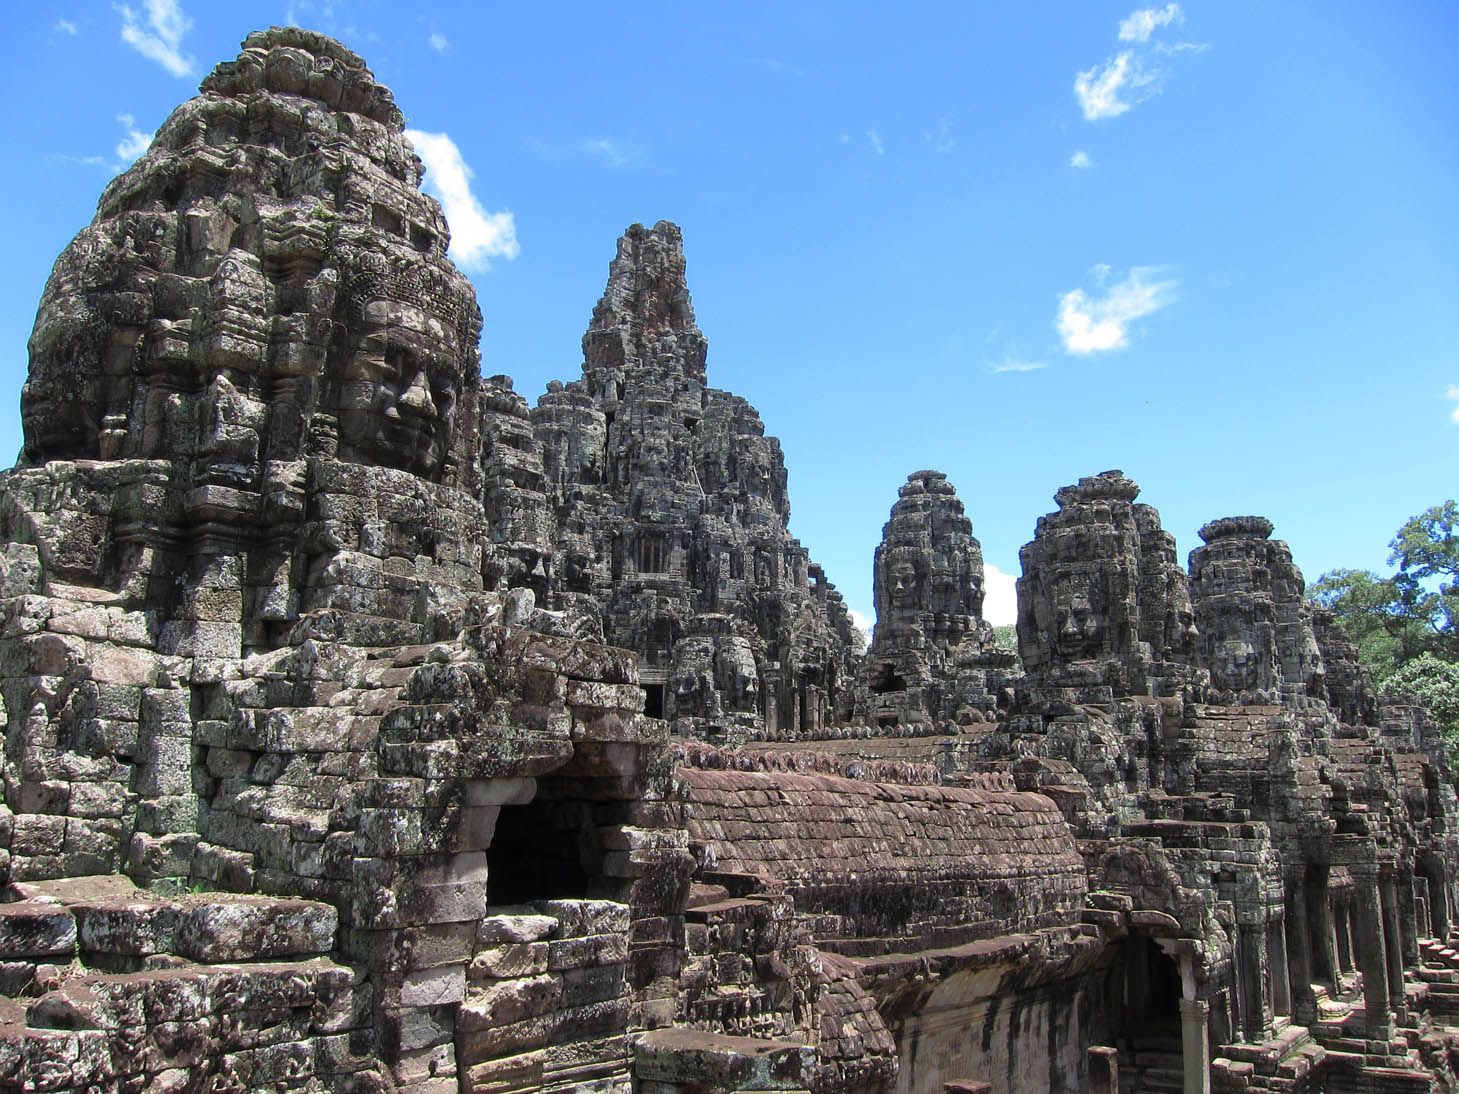 Bayon Faces, By: Vijay Khurana